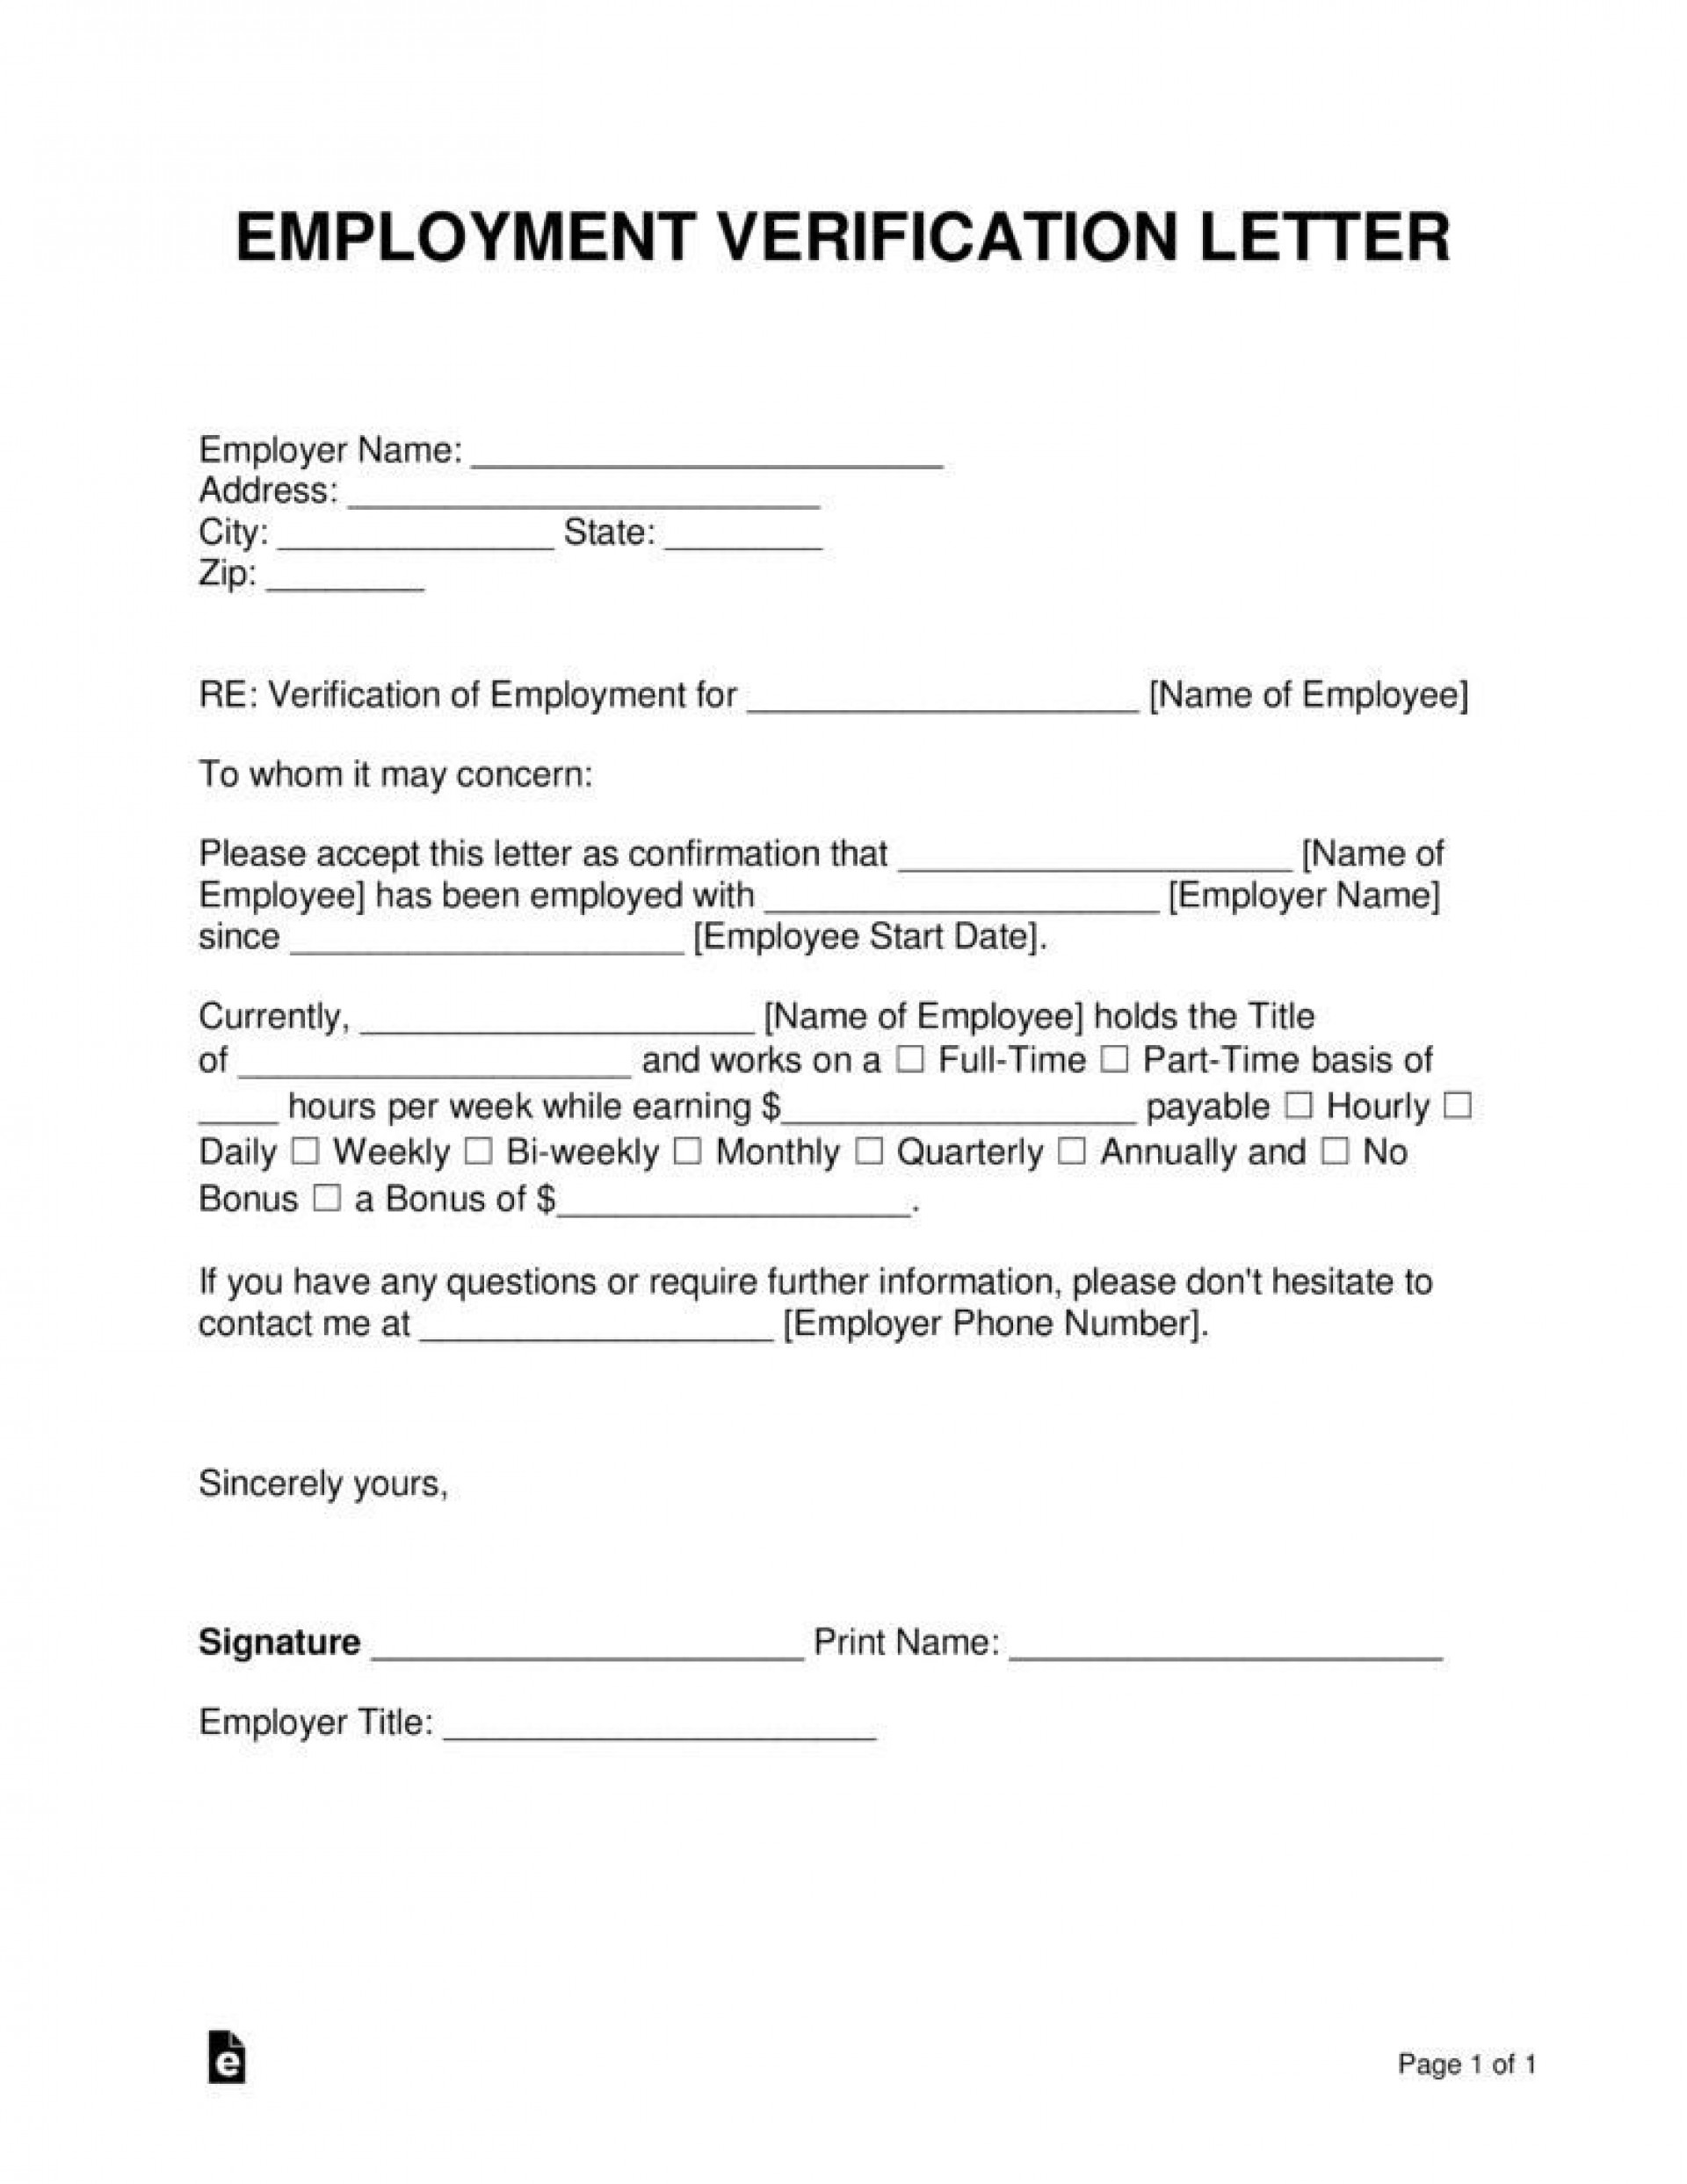 000 Formidable Confirmation Of Employment Letter Template Nz High Definition 1920